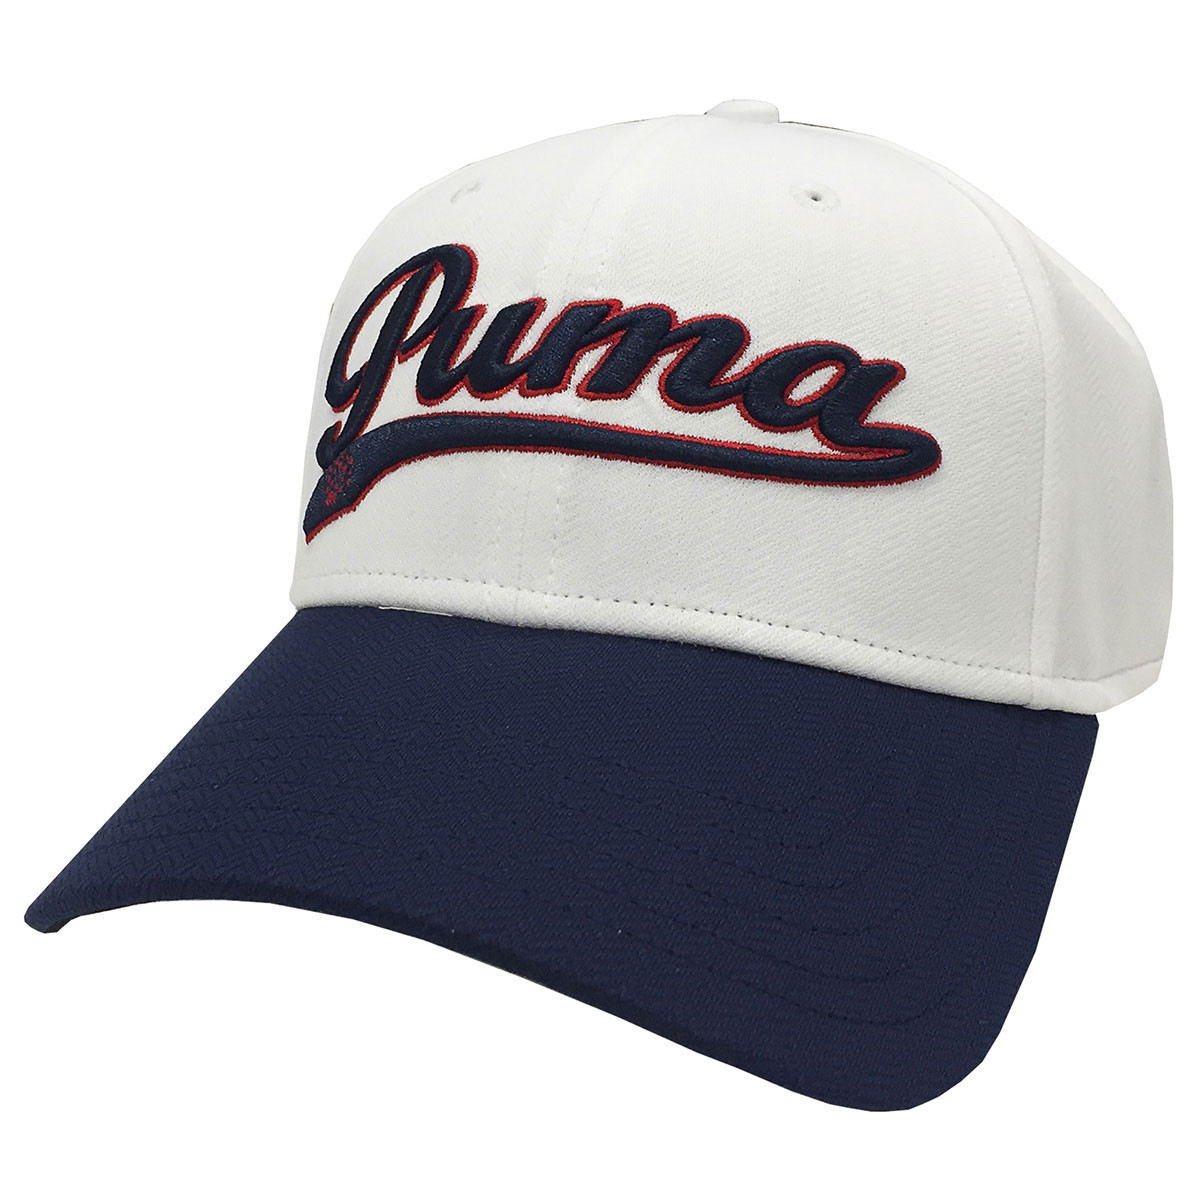 d837a450 Puma Golf Script City Cool Cell Relaxed Fit Cap 908226 Sport Hat - One Size